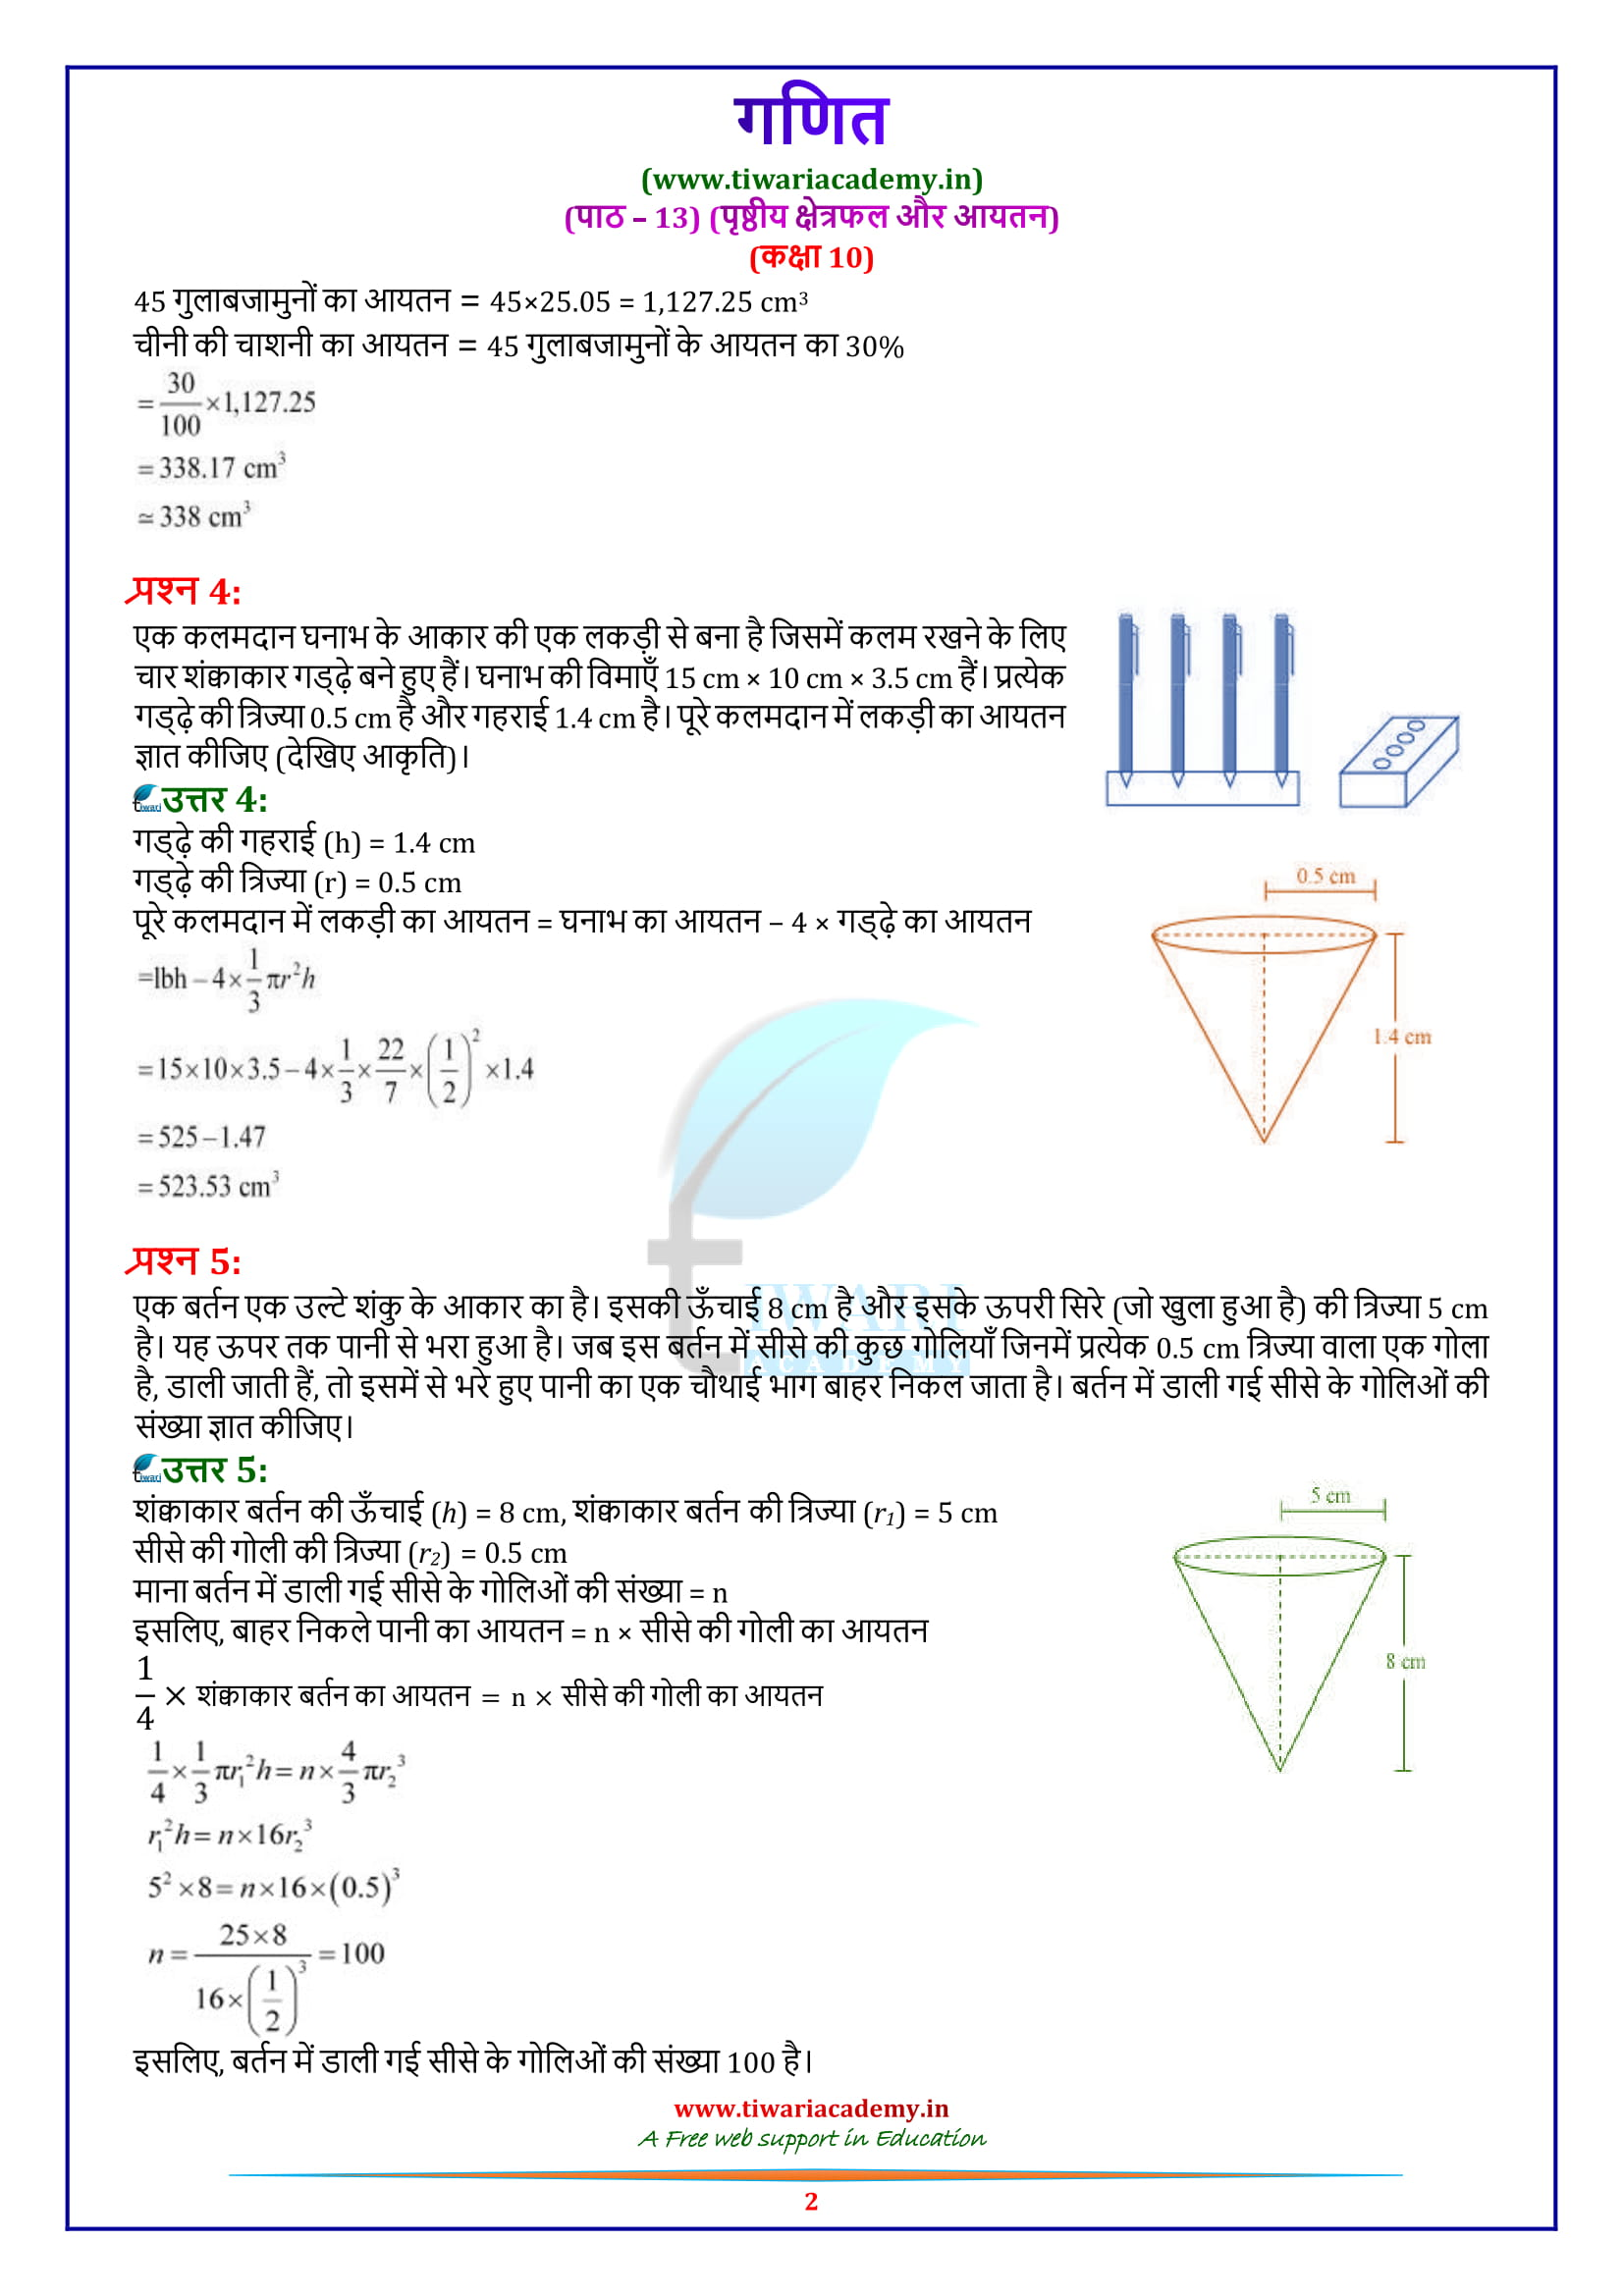 Class 10 Maths Exercise 13.2 solutions updated in hindi for up board